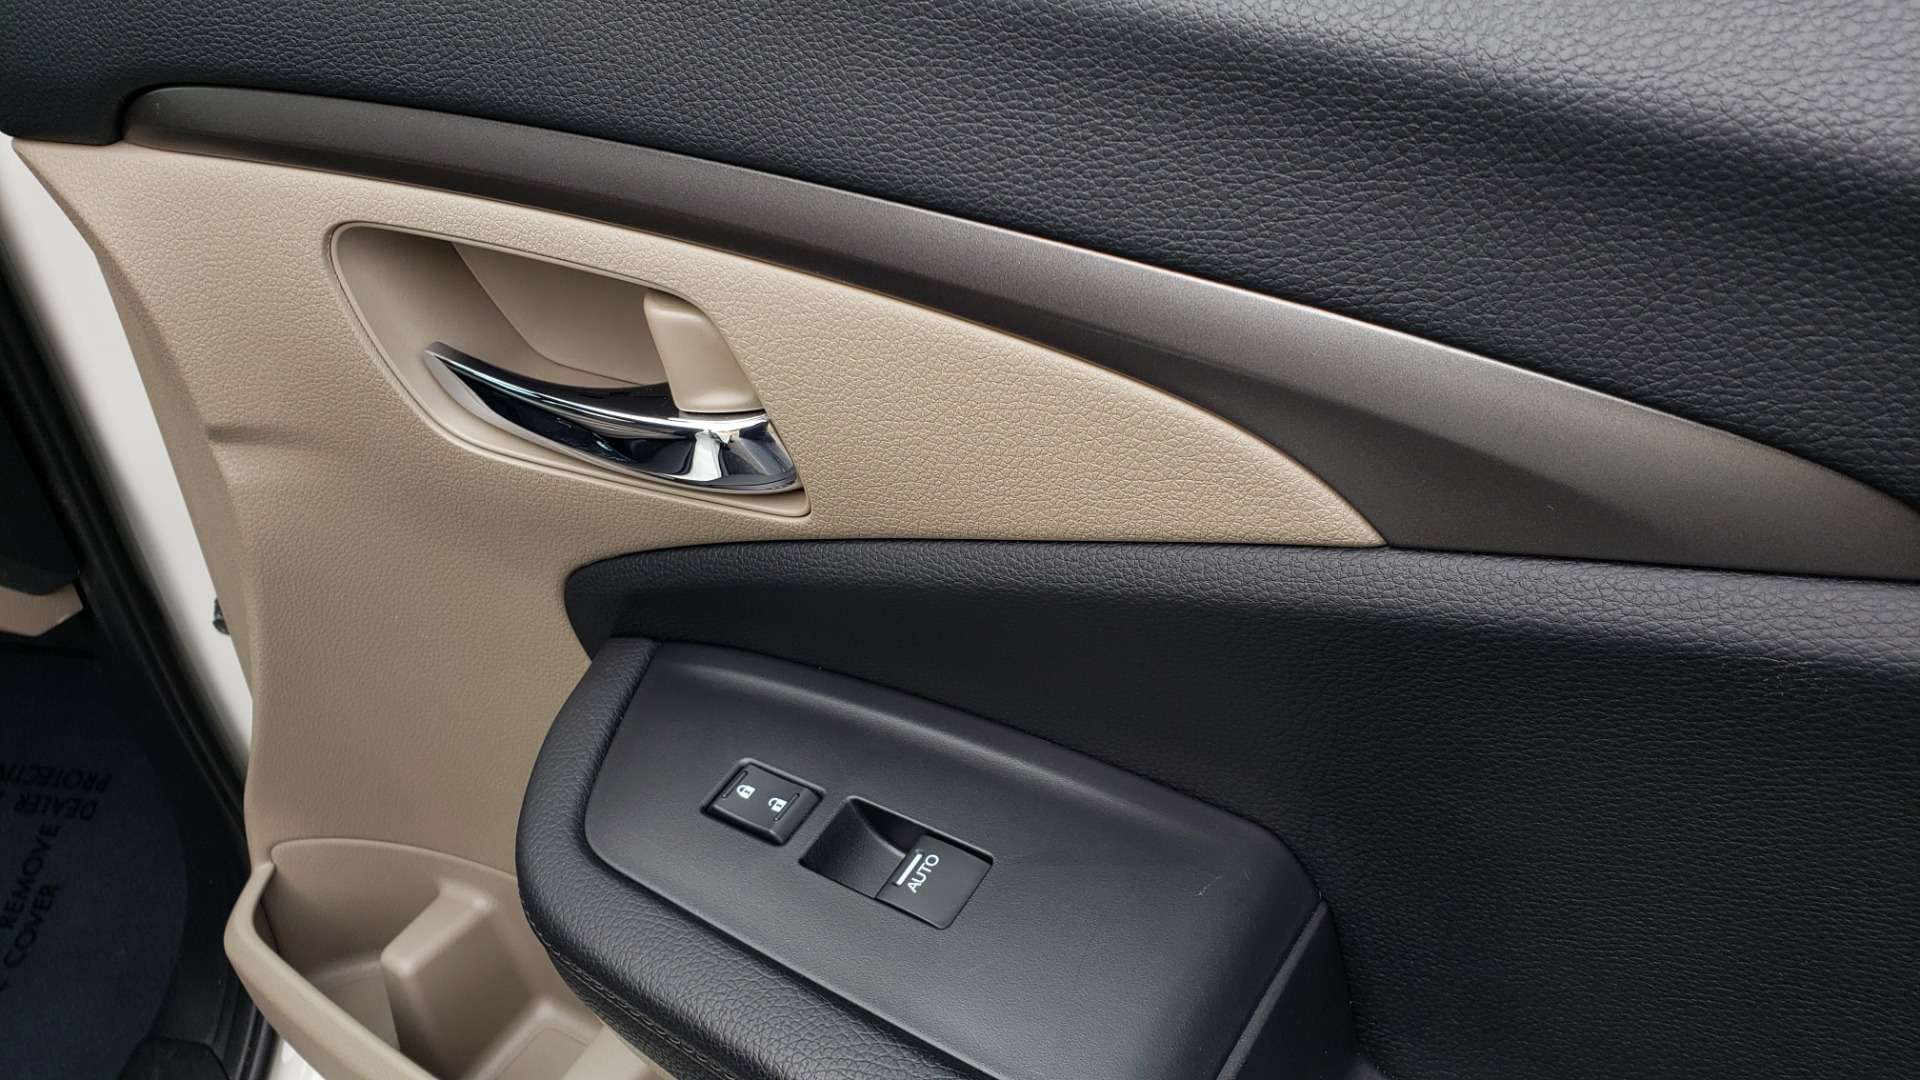 Used 2019 Honda PILOT EX-L / V6 / NAV / SUNROOF / DVD / 3-ROW / REARVIEW for sale Sold at Formula Imports in Charlotte NC 28227 71